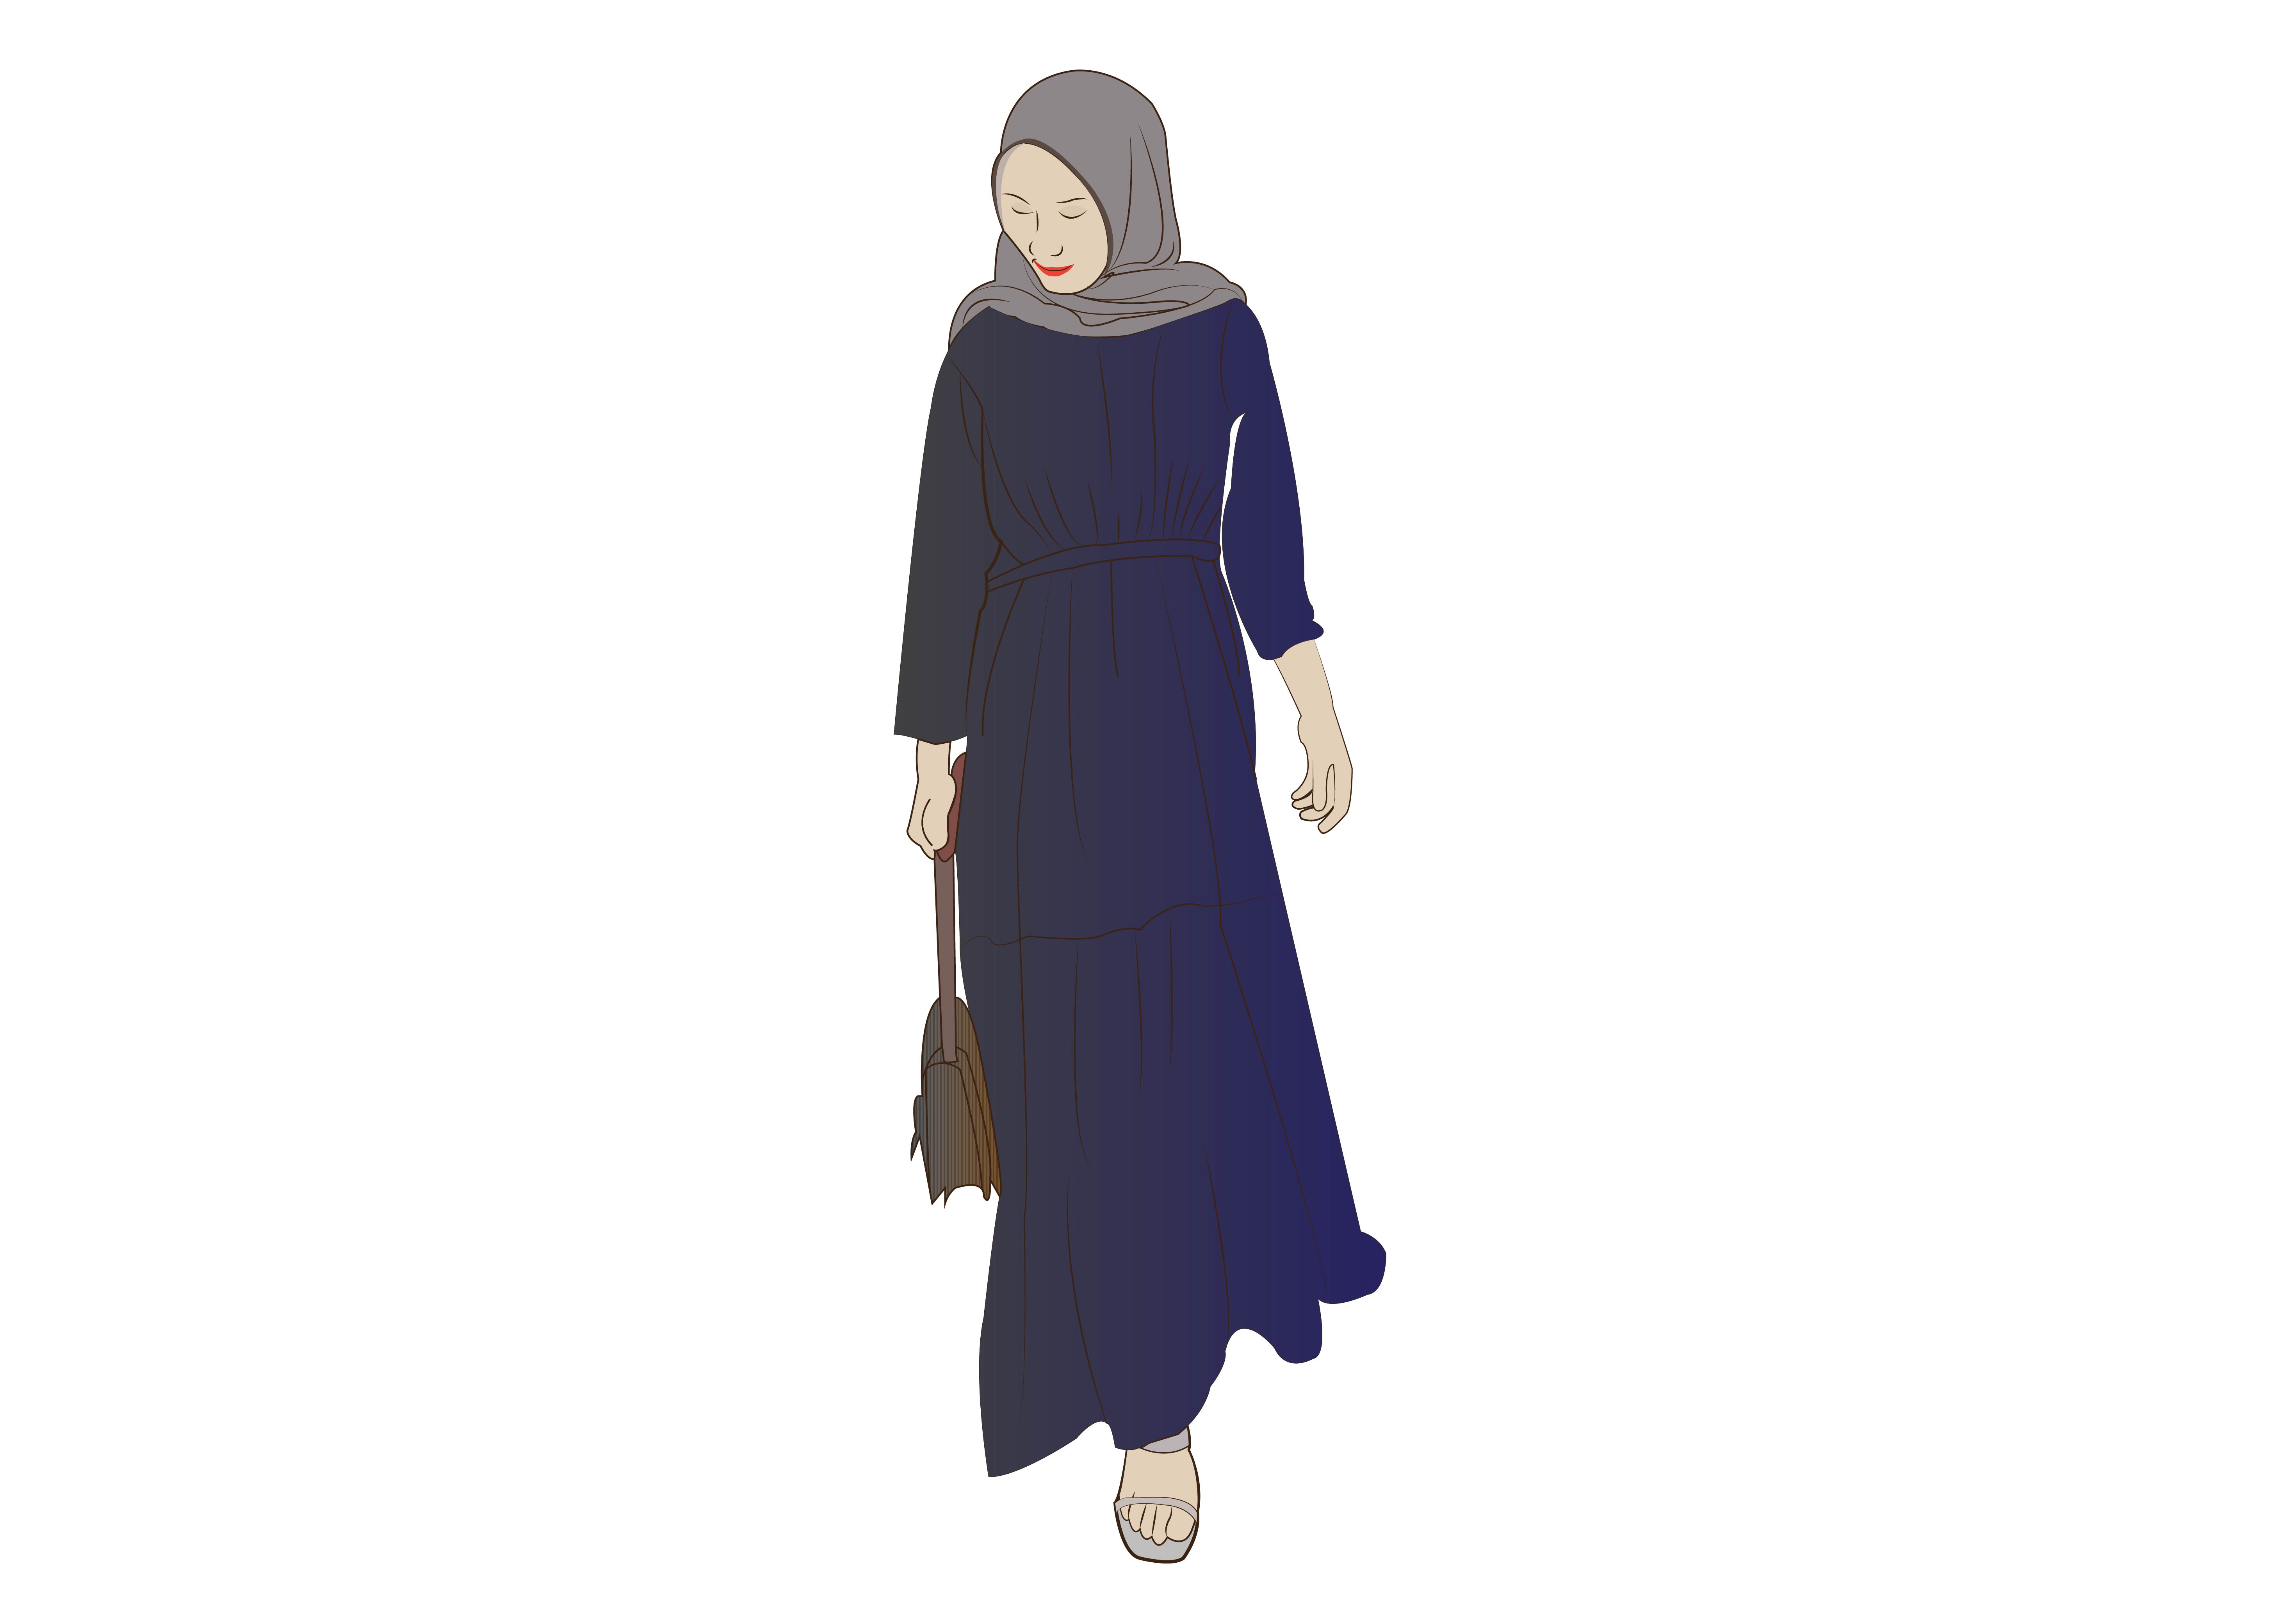 Download Free Hijab Girl 1 Graphic By Studioisamu Creative Fabrica for Cricut Explore, Silhouette and other cutting machines.